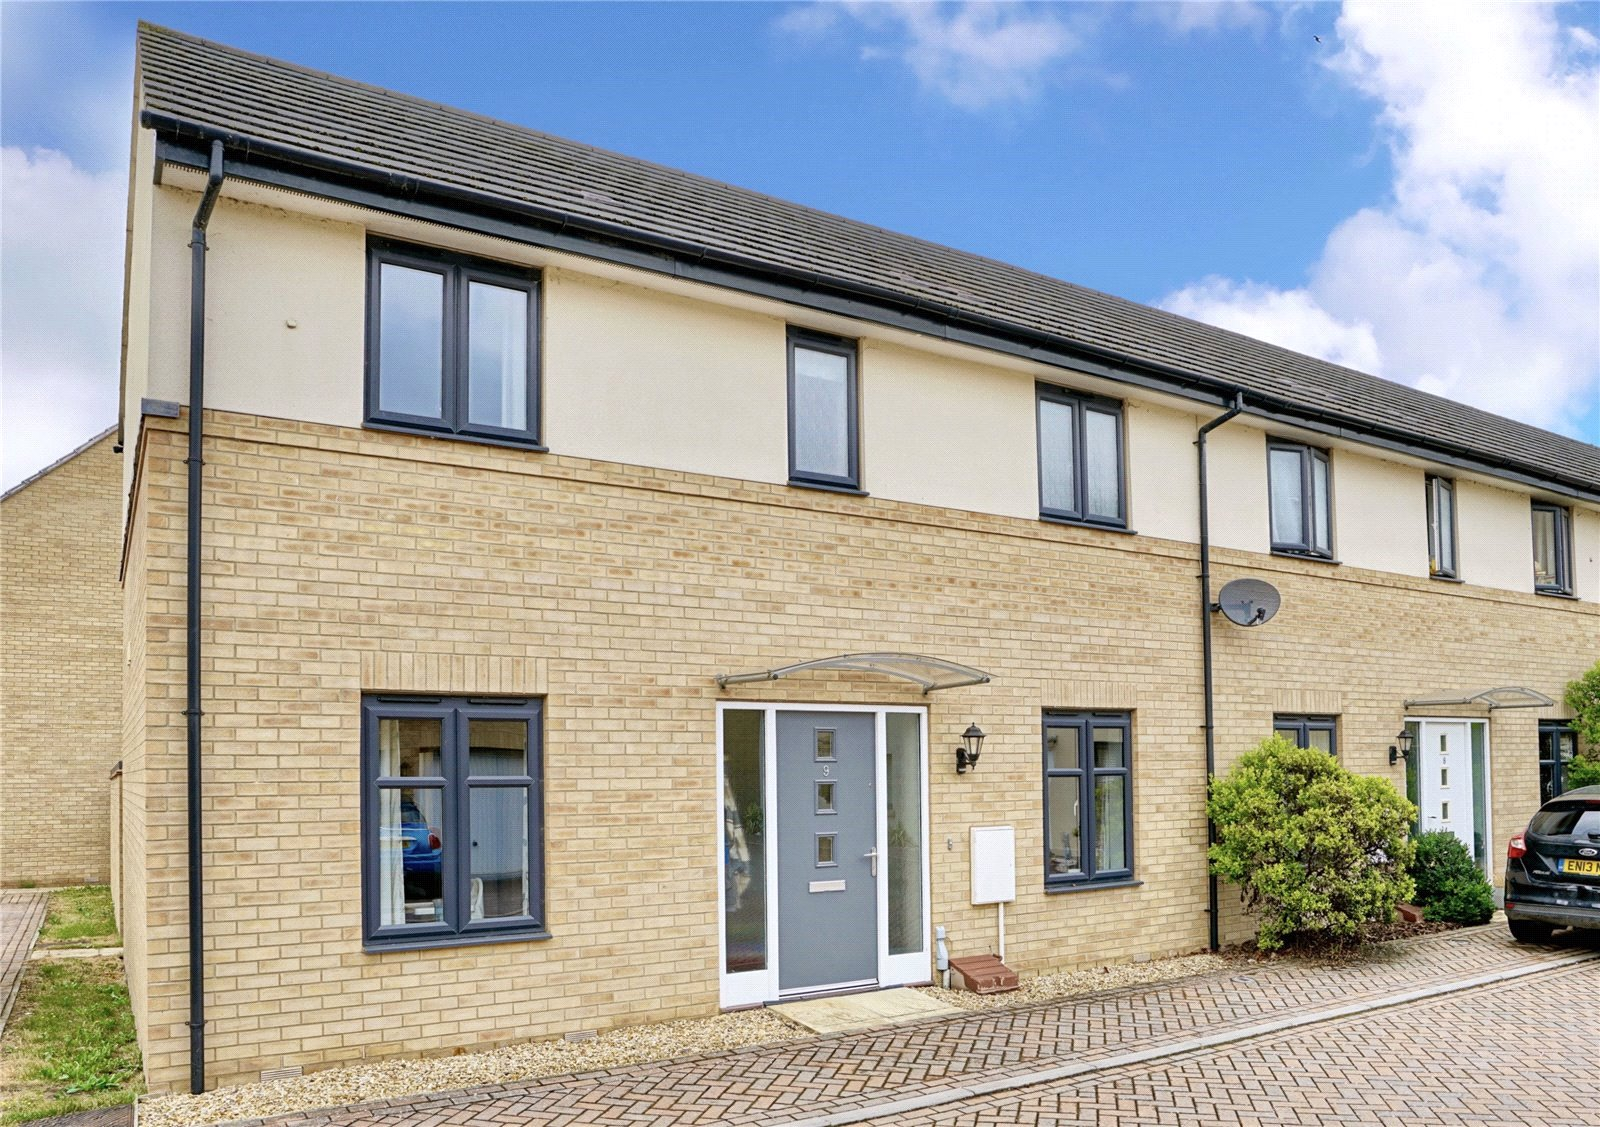 3 bed house for sale in St. Ives, PE27 5DL - Property Image 1